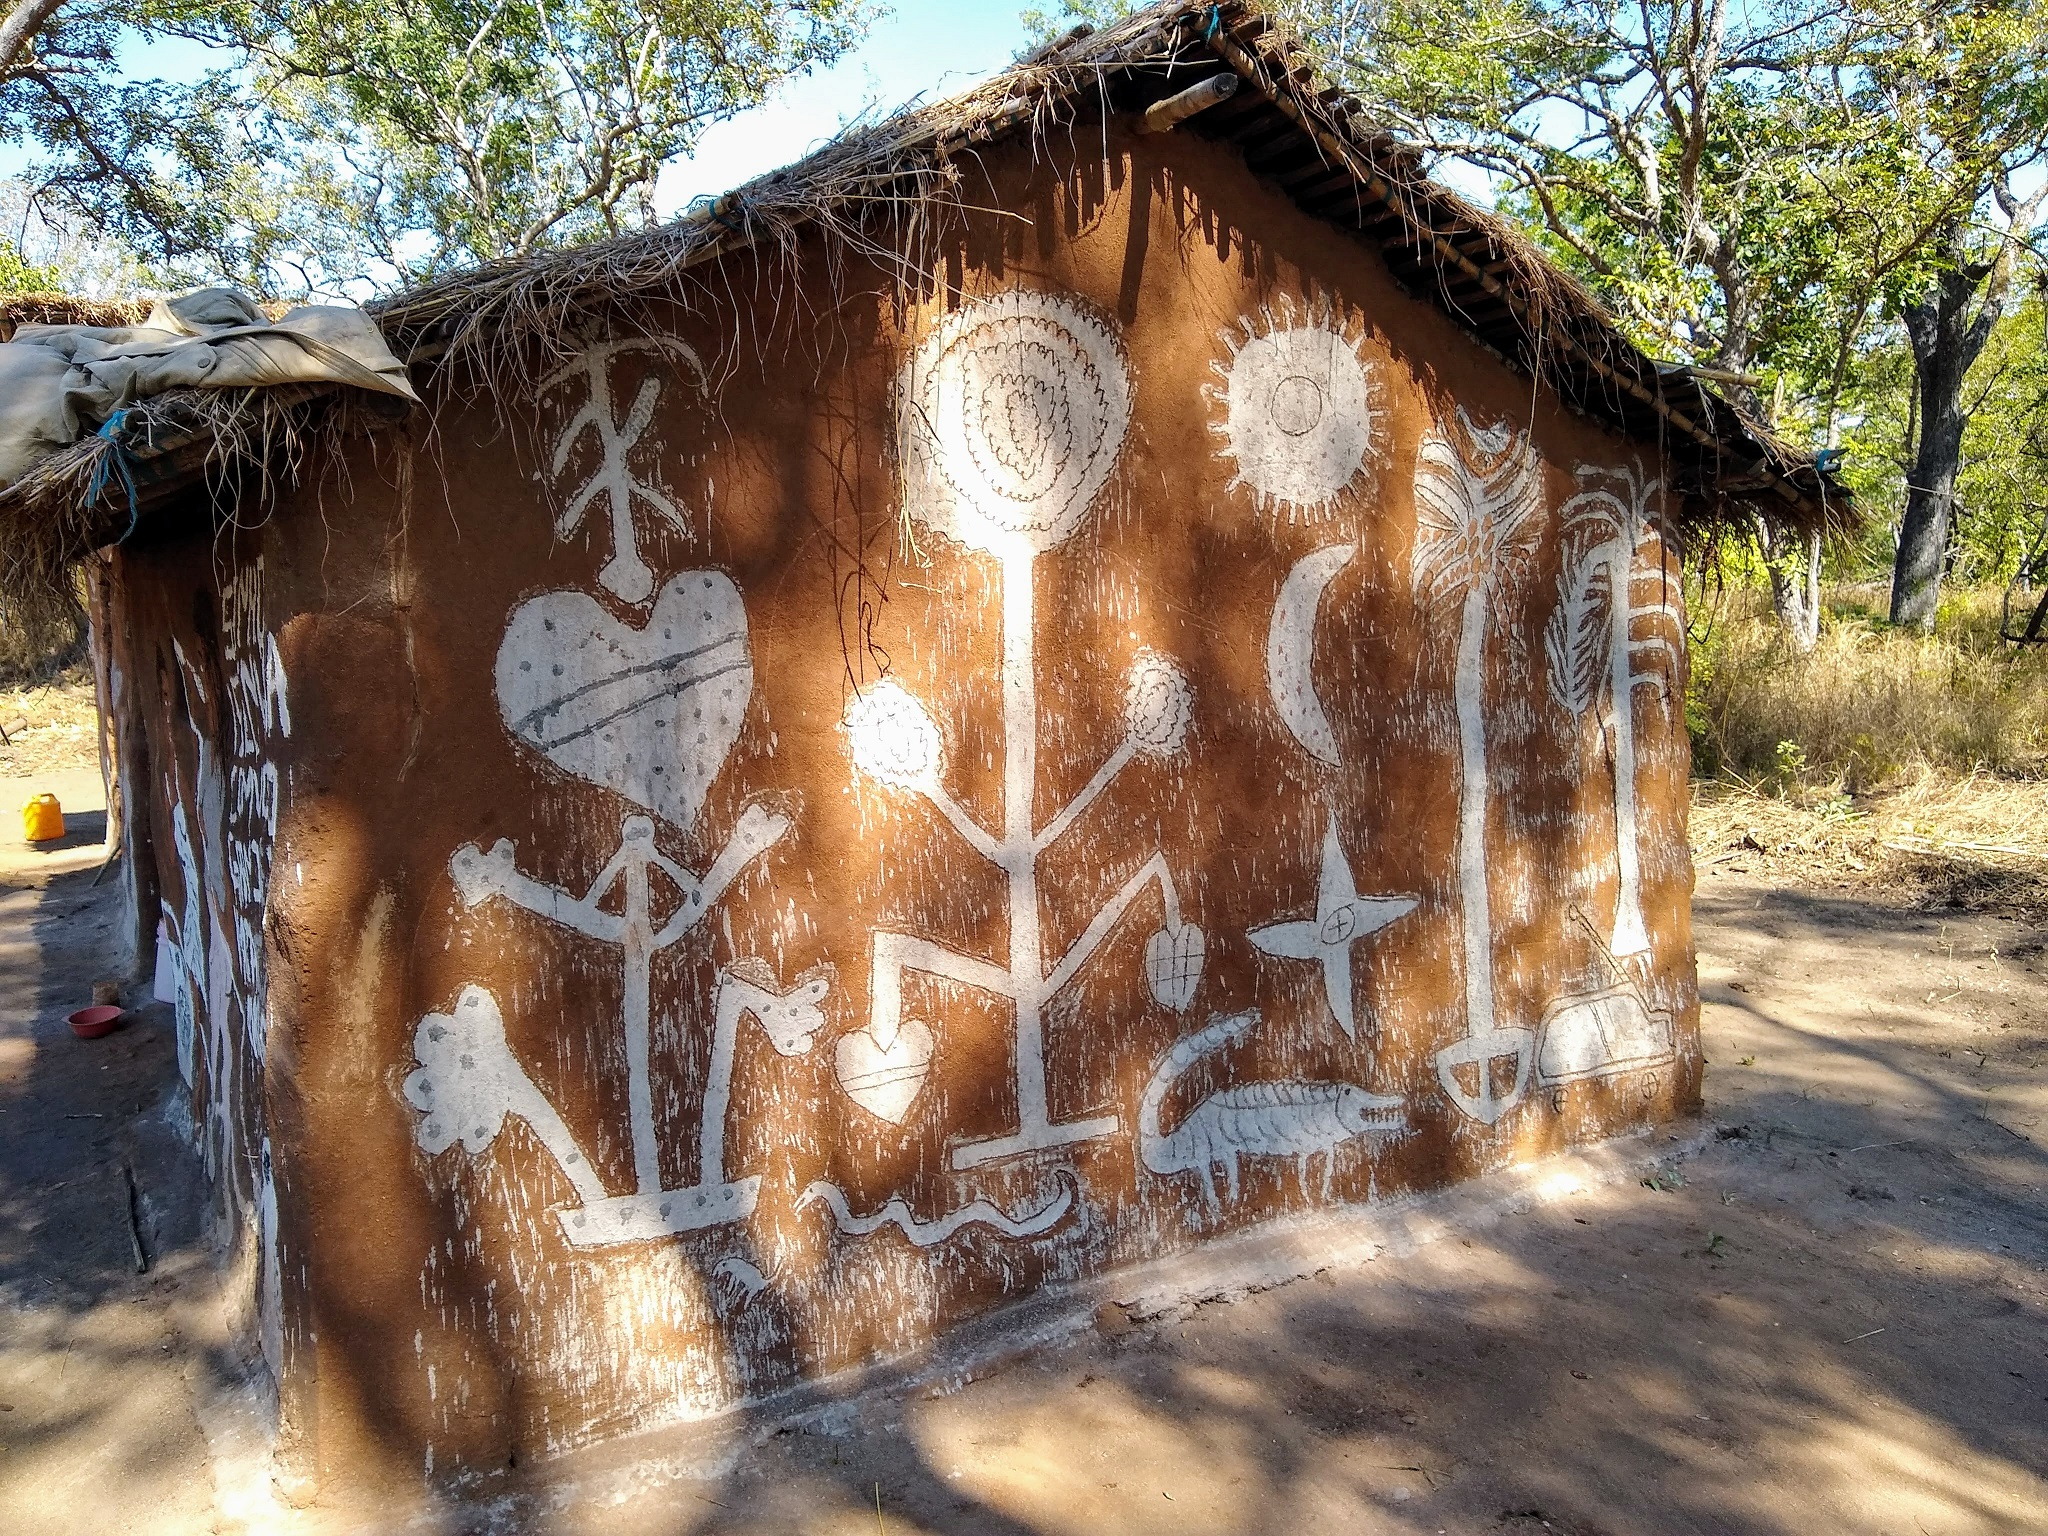 Fertility and protective symbols are painted on side of house in Mozambique